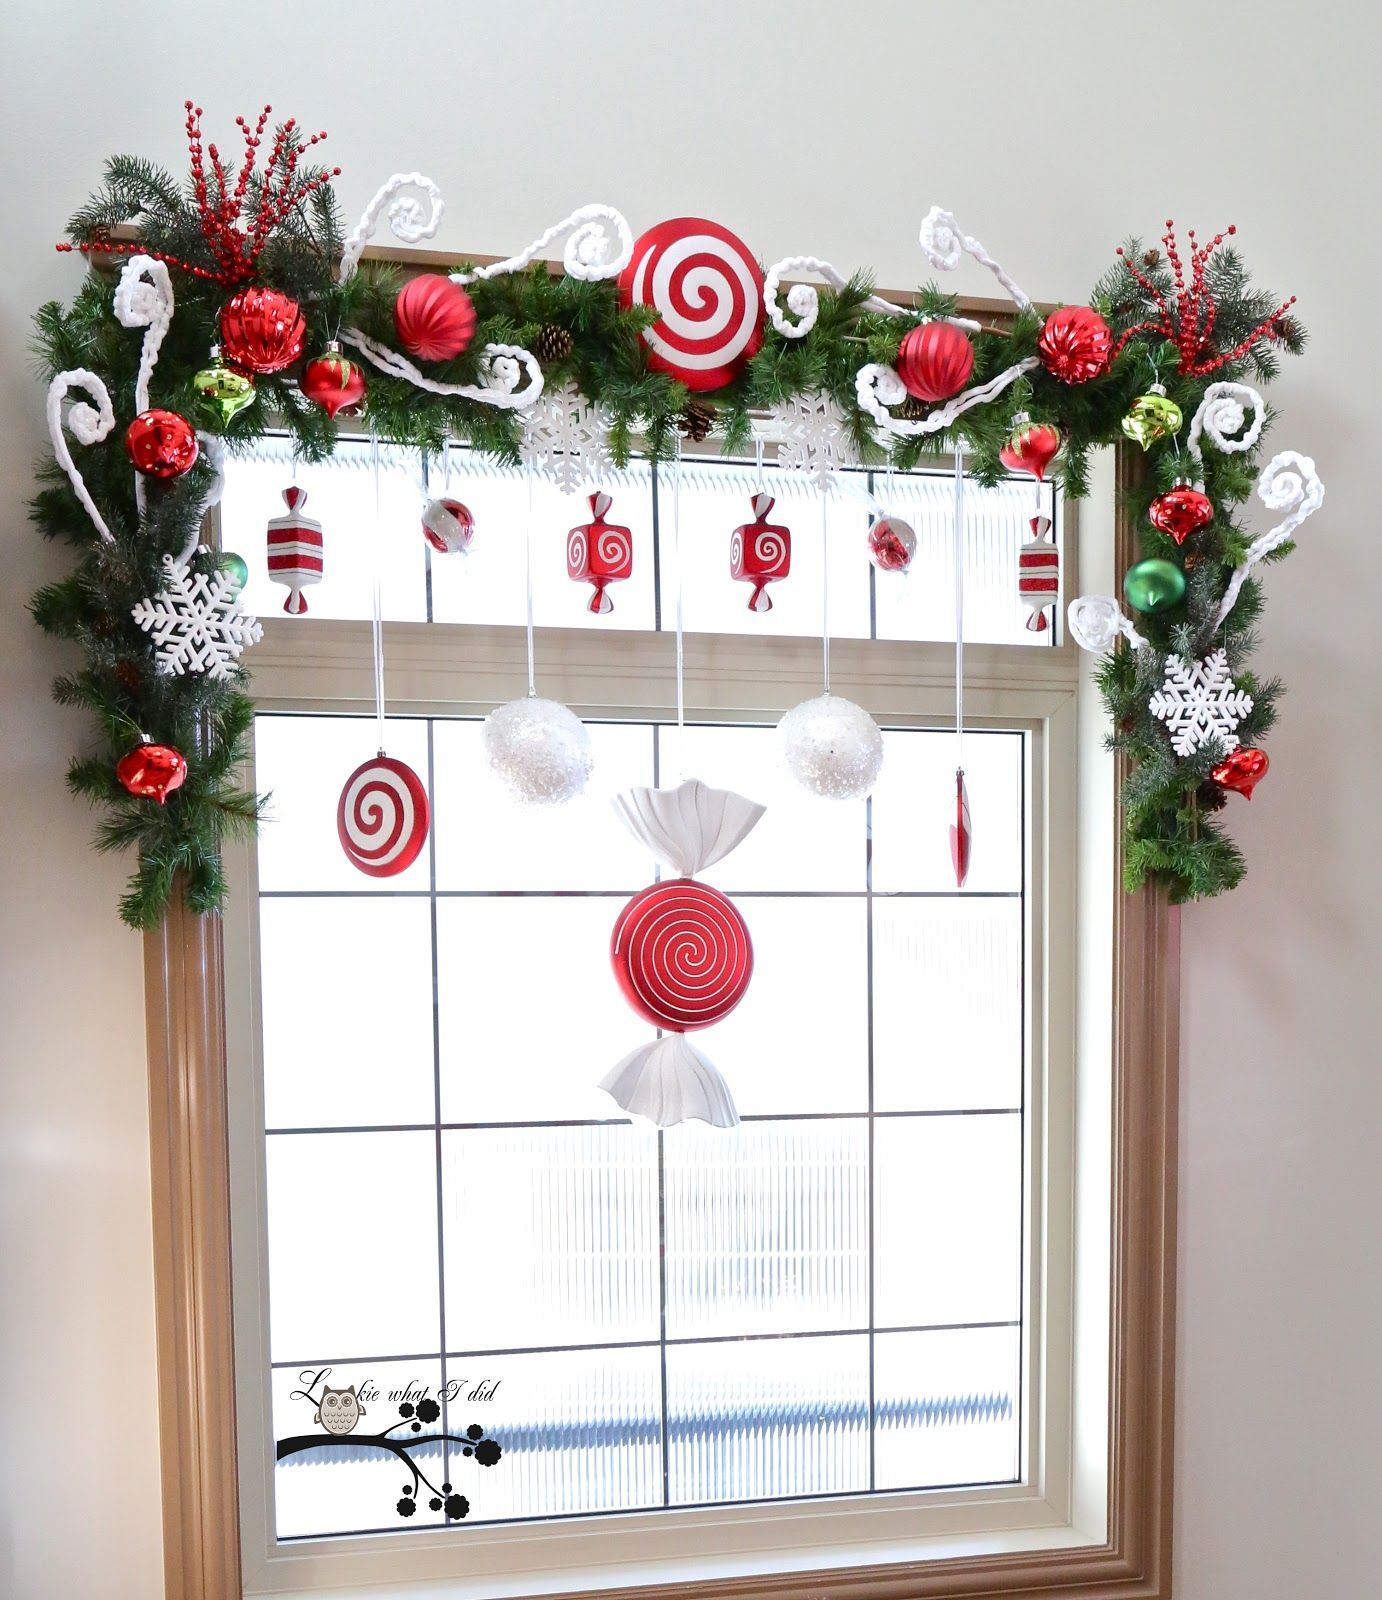 Decorate Above The Windows And Doorways And Above Both Sides Of